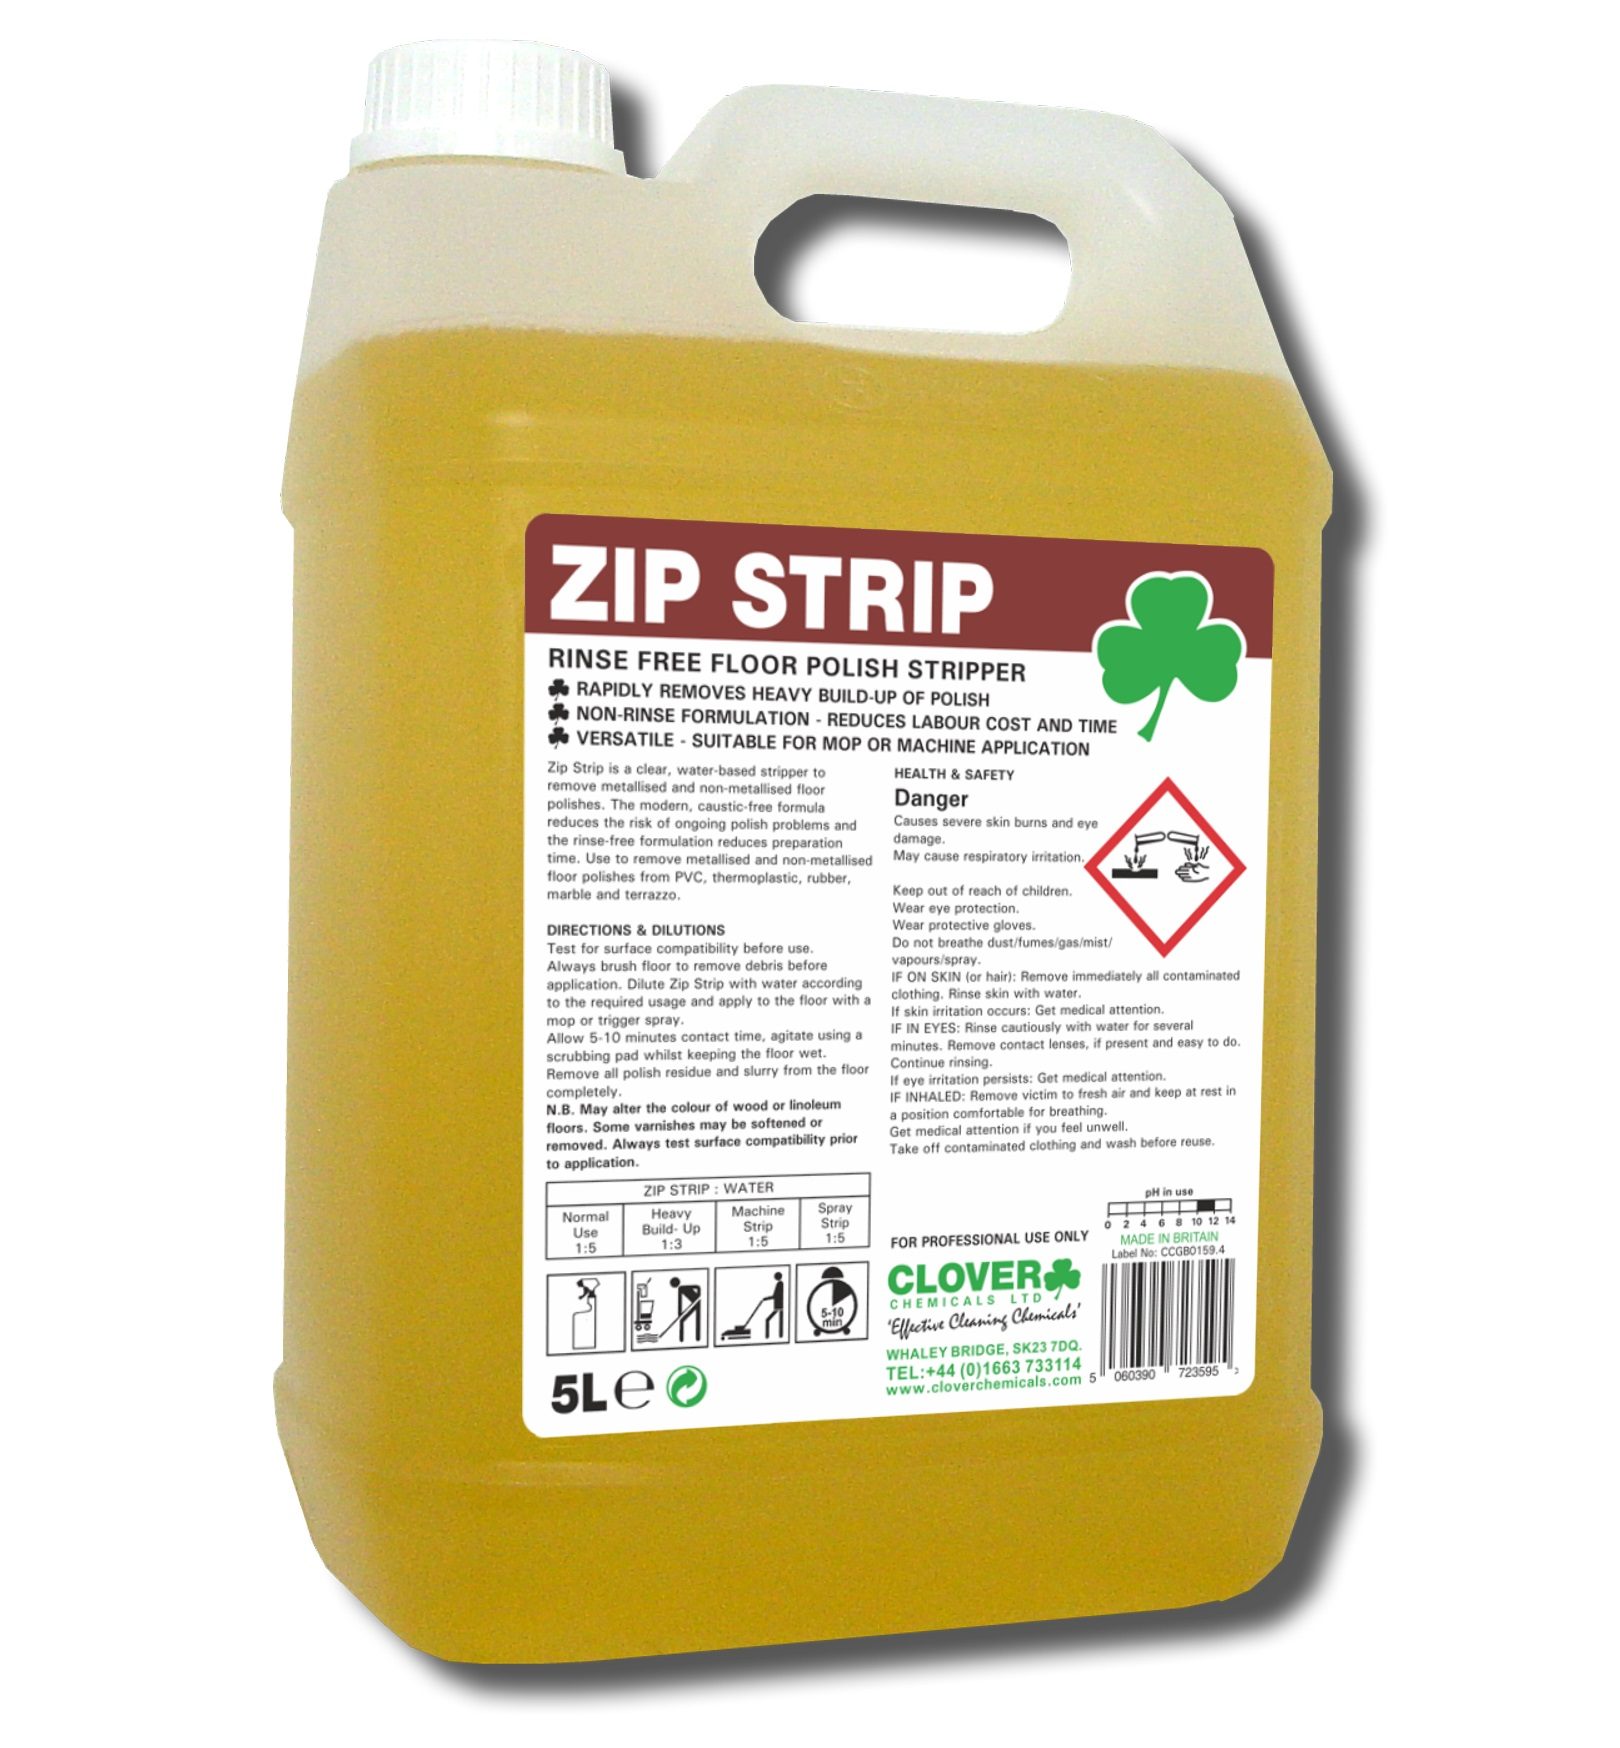 ZIP STRIP - Rinse free floor stripper 5litre